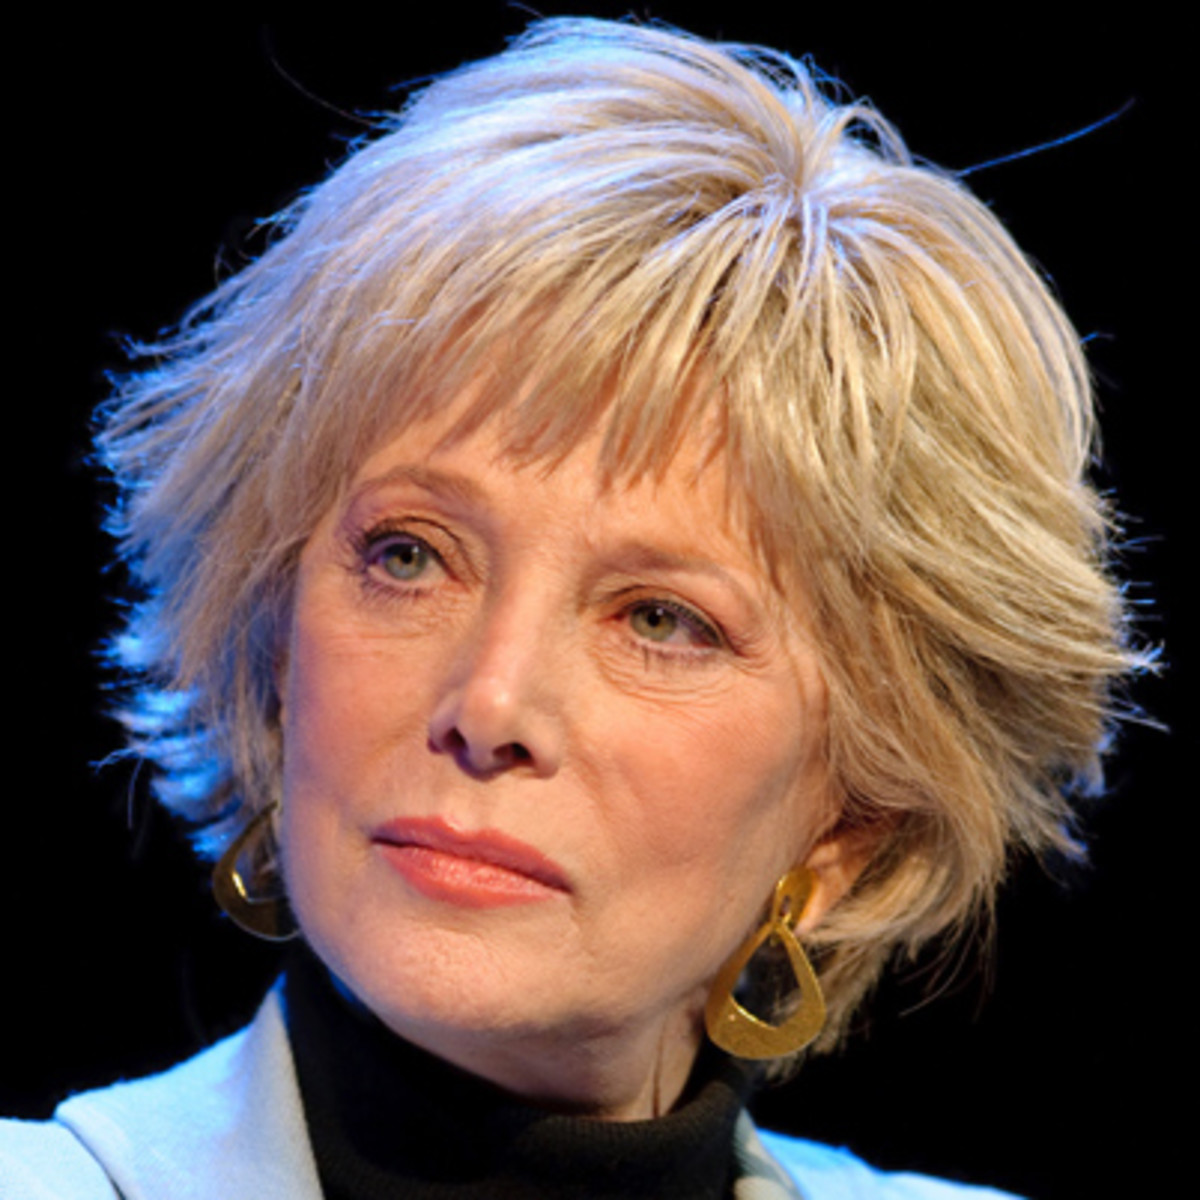 Lesley Stahl - News Anchor, Editor, Journalist - Biography